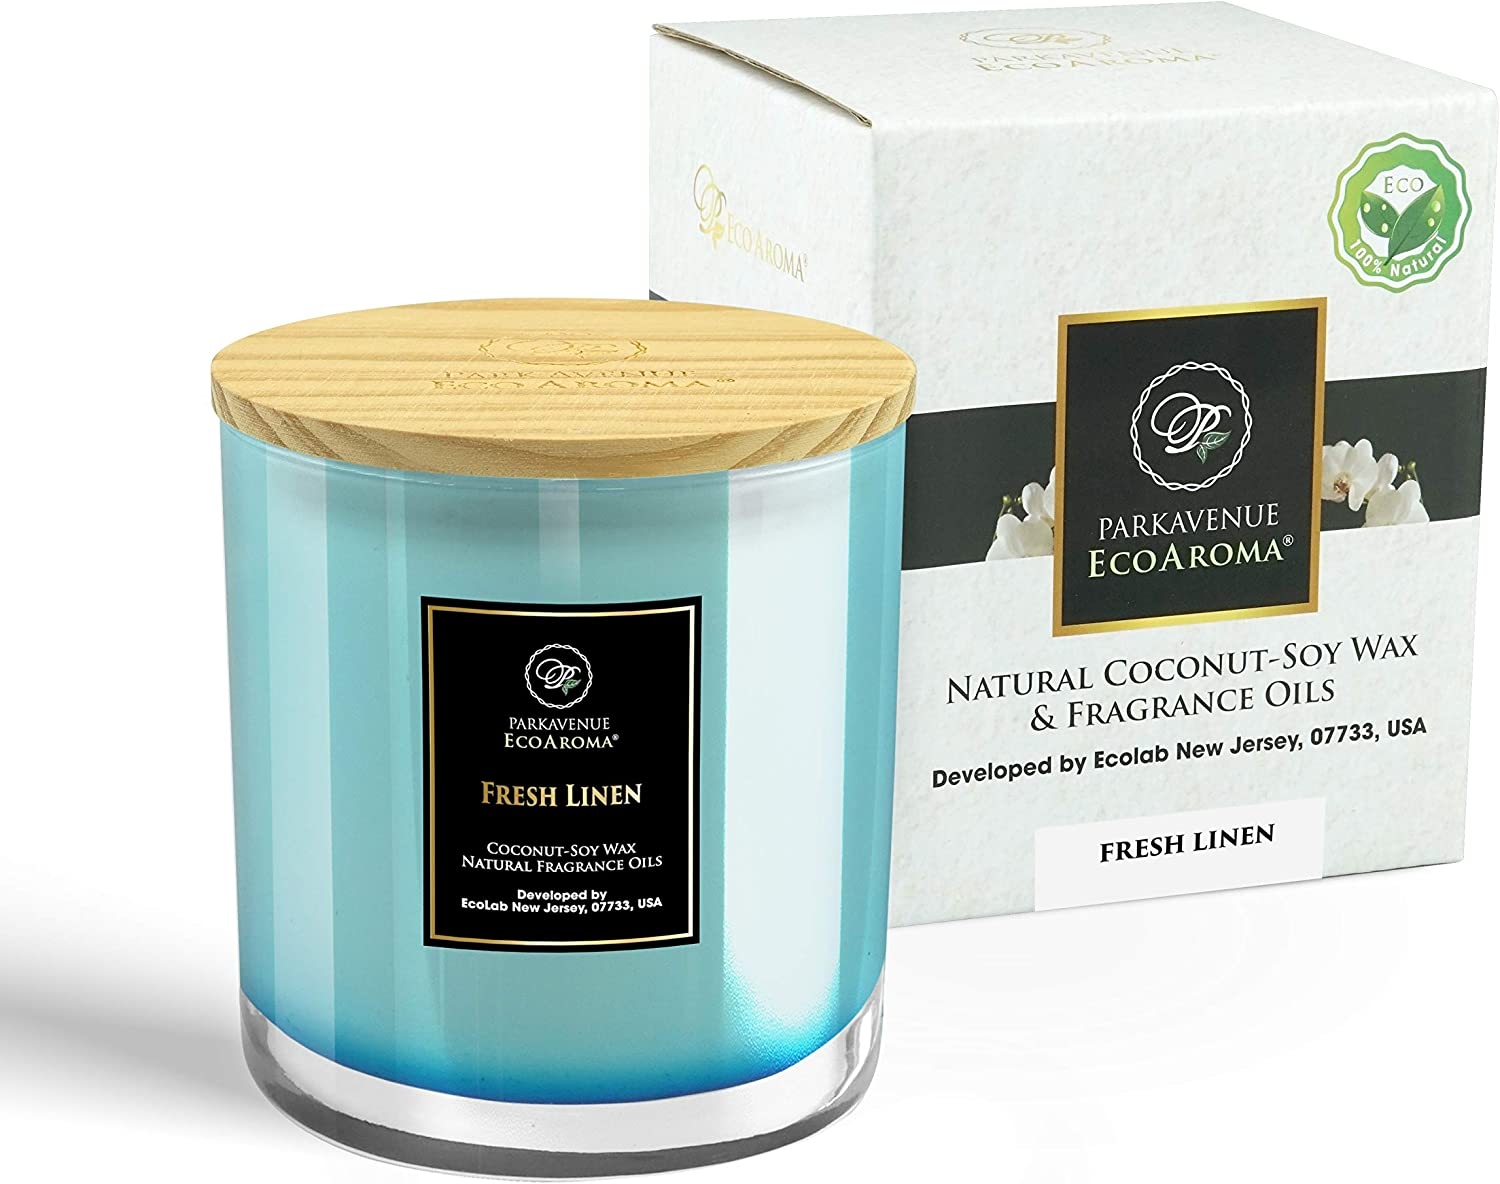 Lavender /& Vanilla Veggie Wax and Fragrance Oils 12 Oz Each Scented Frosted Jar Candles Natural Soy EcoCandles ParkAvenue EcoAroma Glass Jar Candles